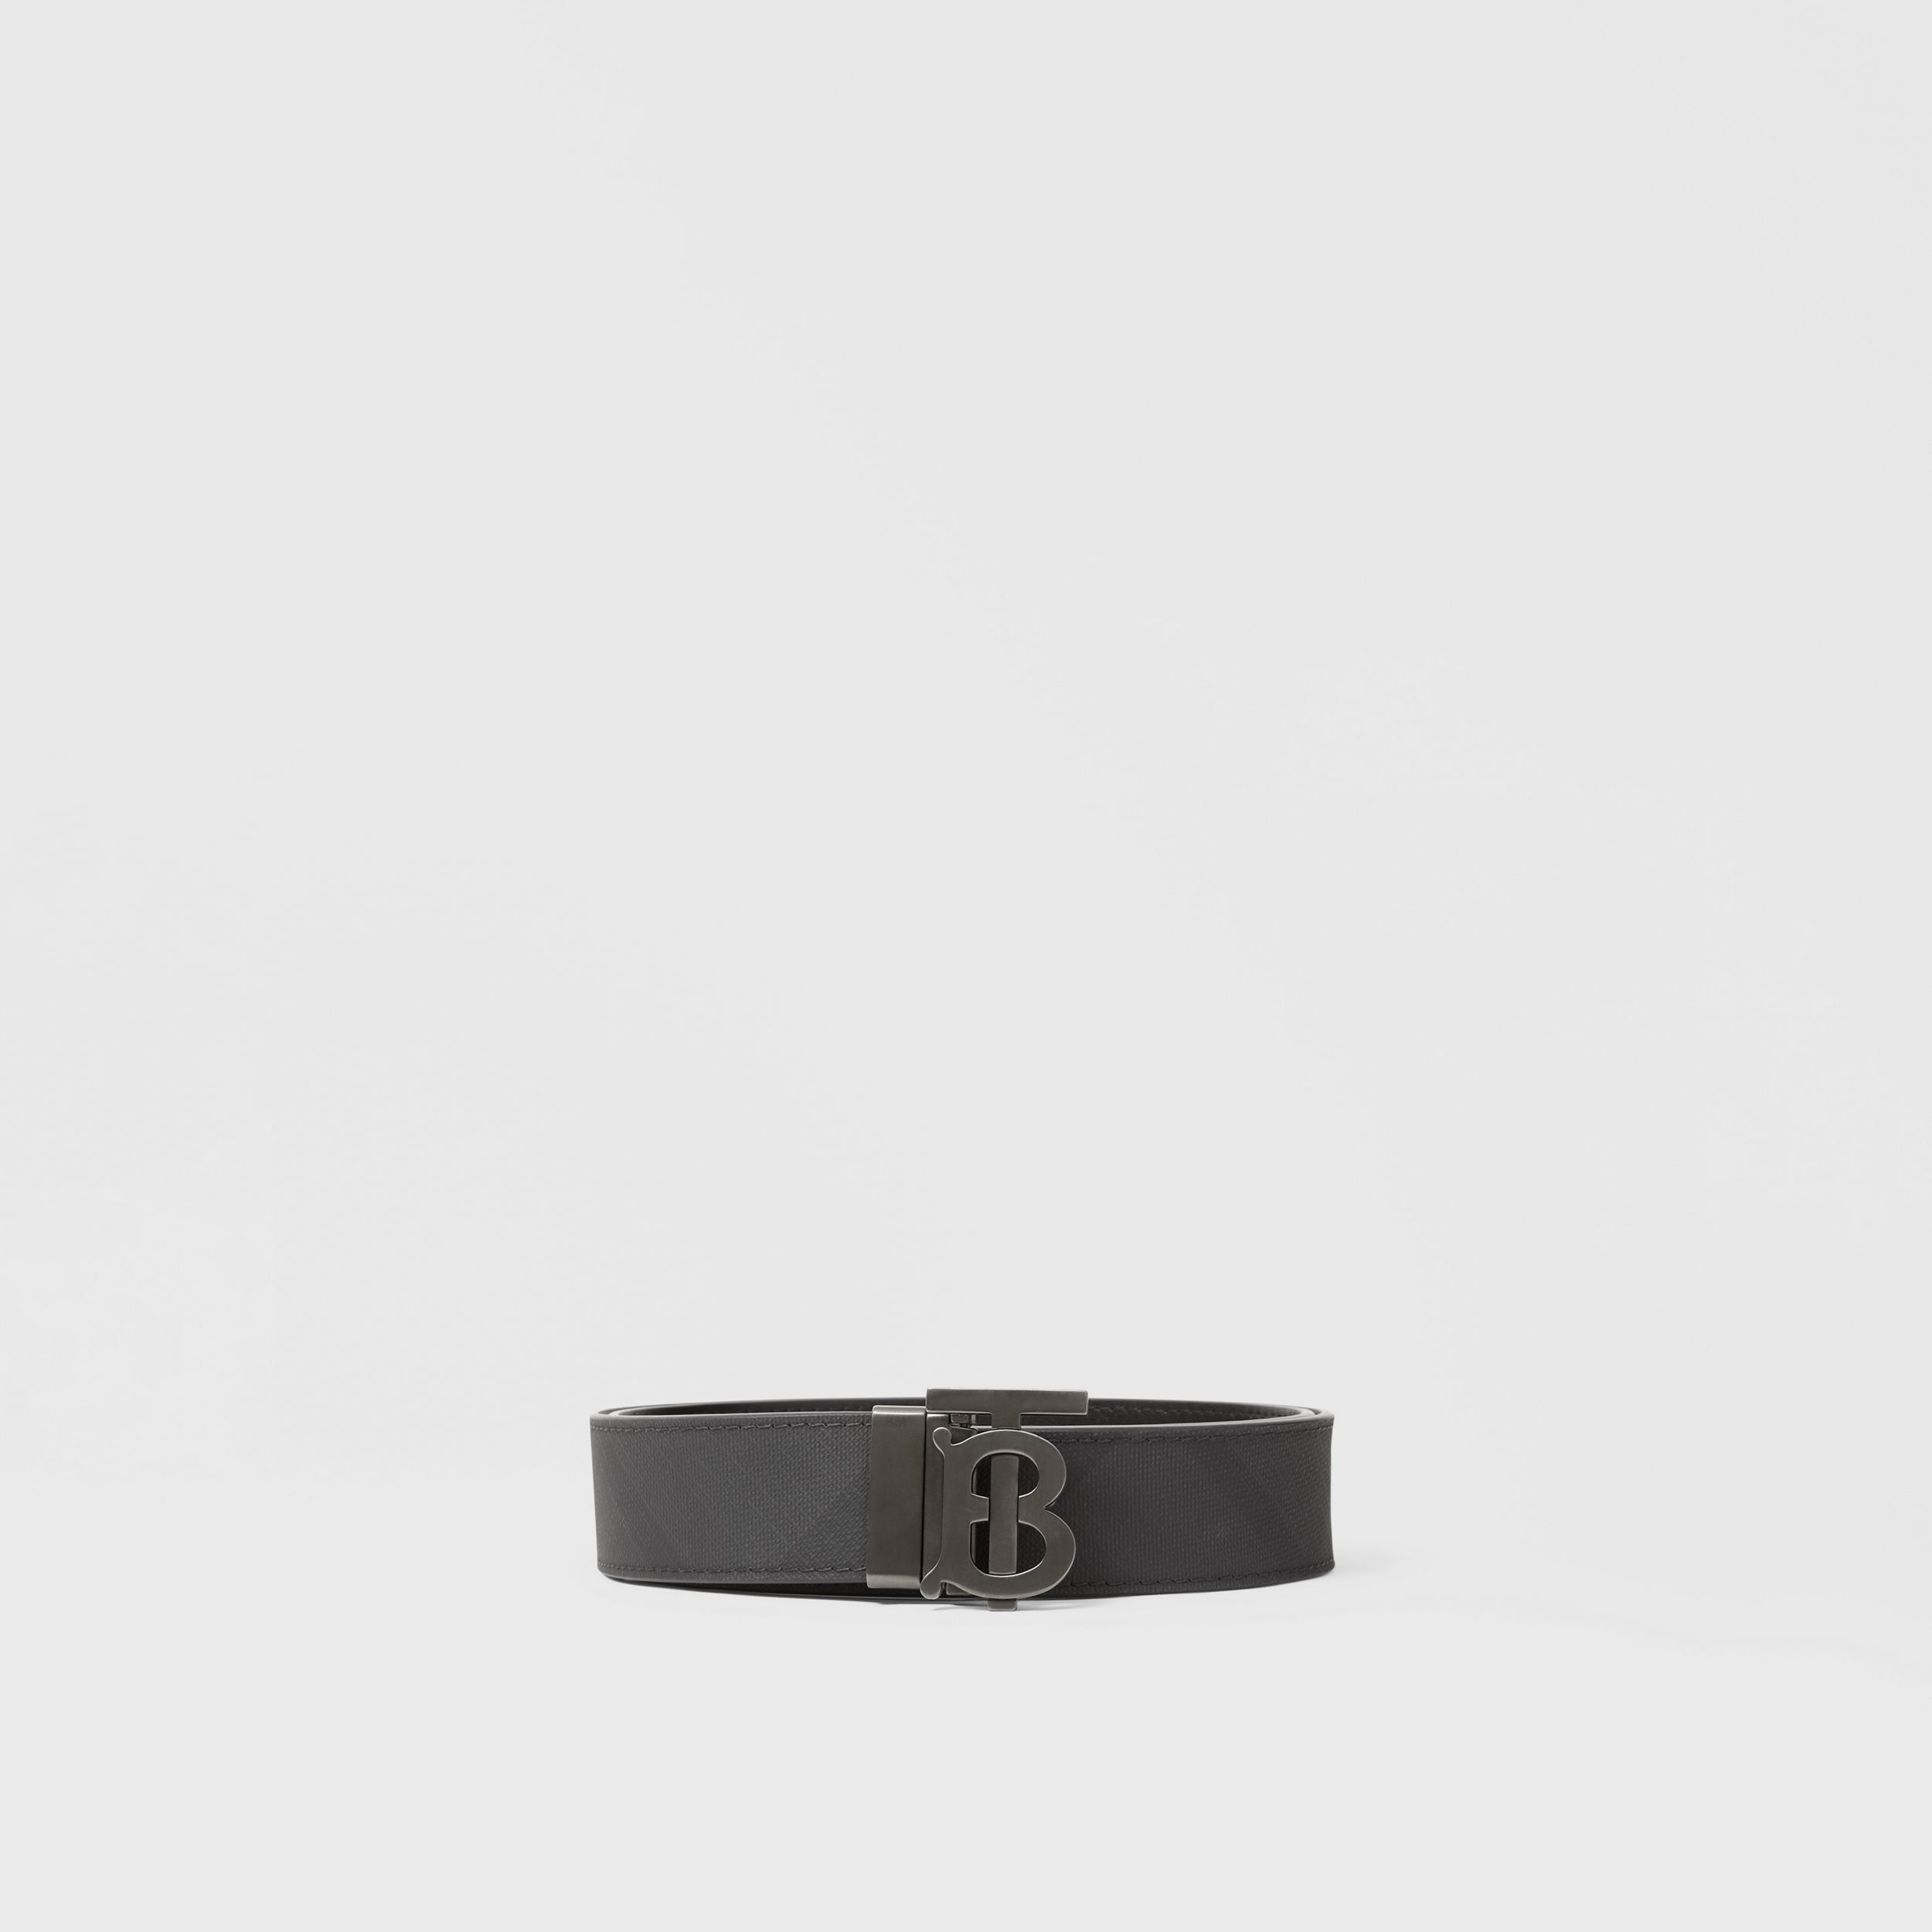 Reversible Monogram Motif London Check Belt in Dark Charcoal - Men | Burberry Australia - 4